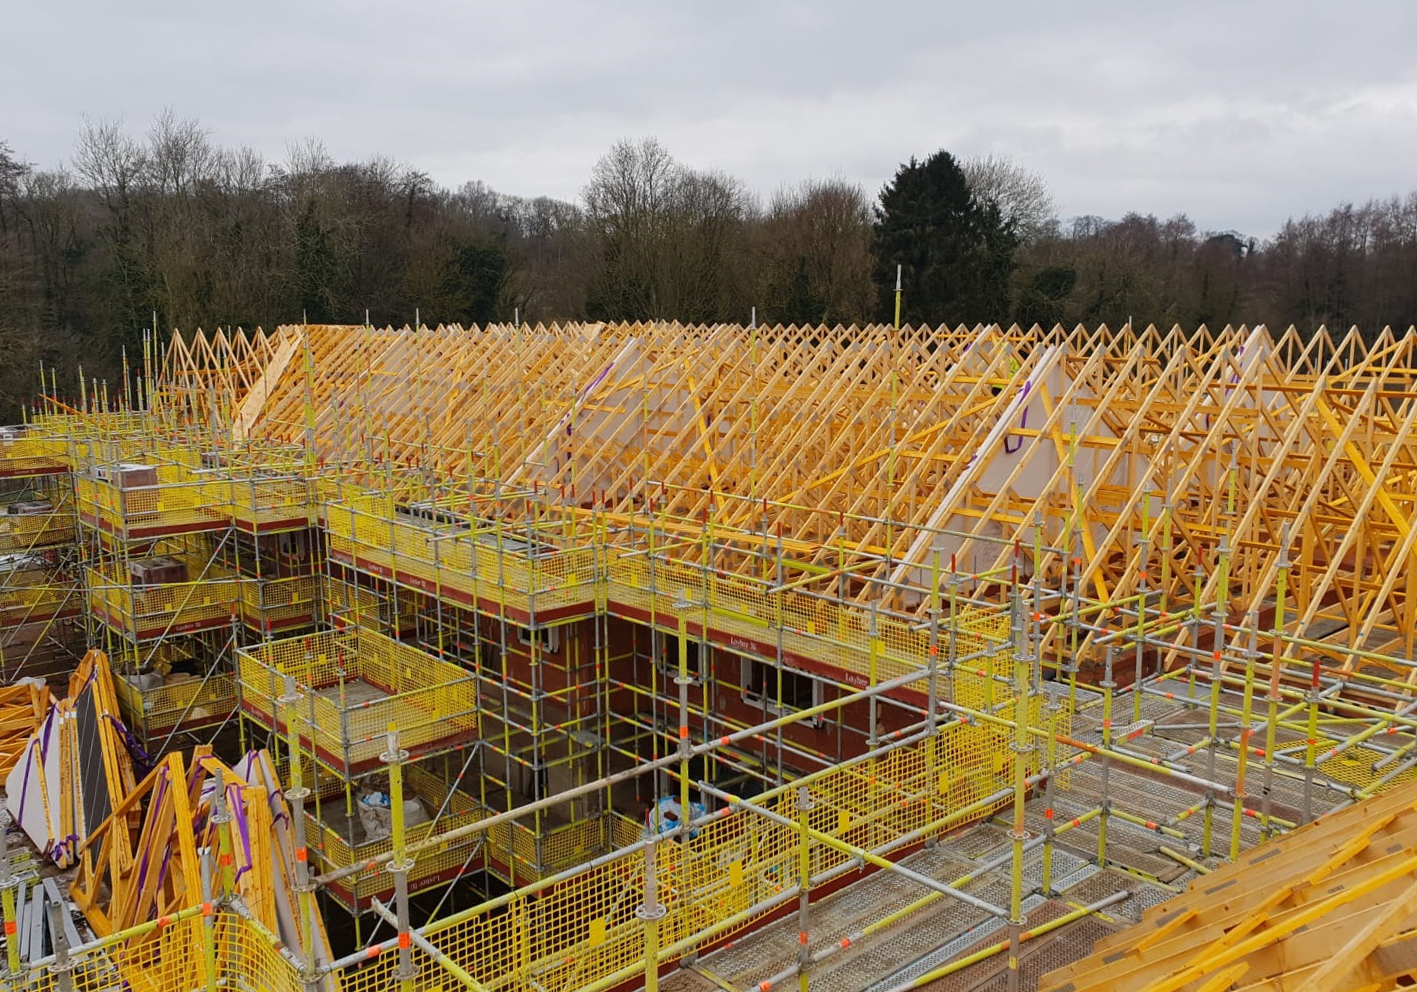 Harmony Timber Solutions UK - Amersham - Buckinghamshire - Roof Truss - Trusses - Timber Engineer - Engineering - Supplier - Kent